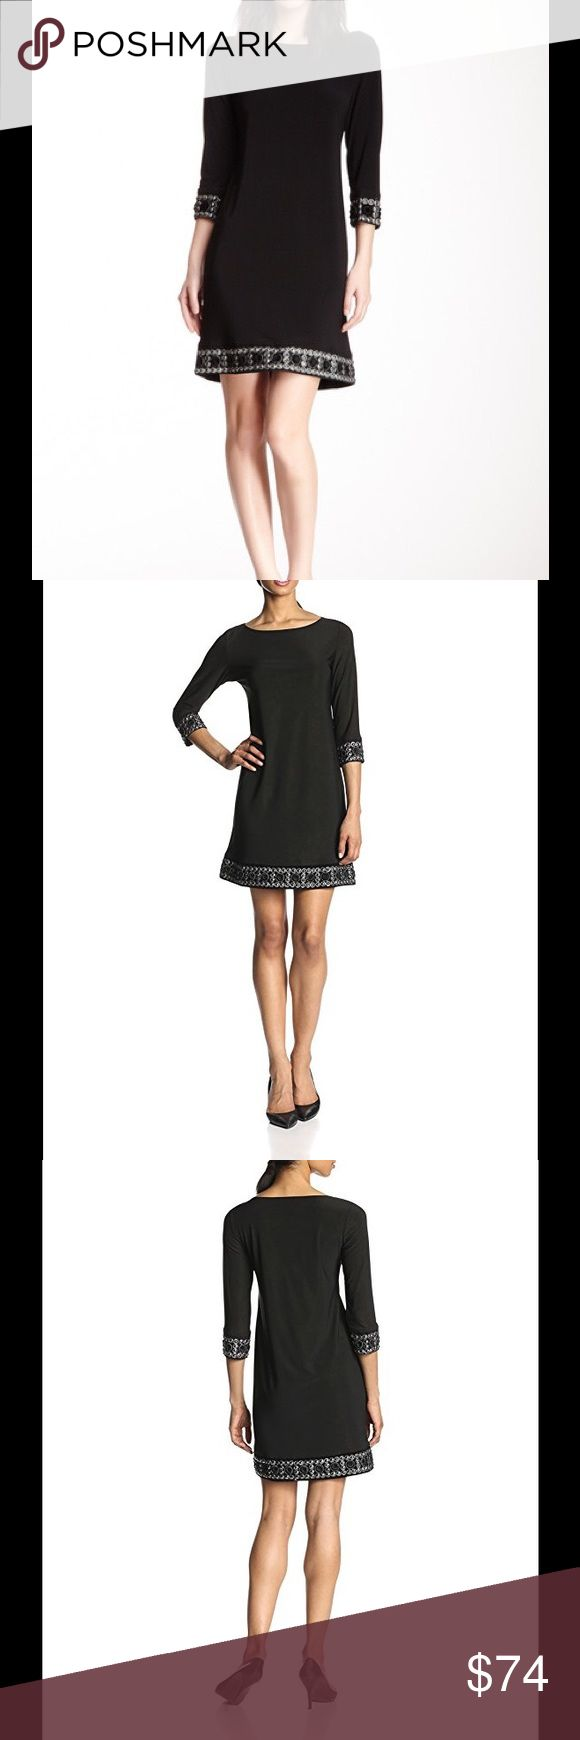 "NWOT Tiana B Embellished Black Dress - Size S NWOT Tiana B Embellished Black Dress - Size S  Crew neck 3/4 length sheer sleeves  Embellished trim on sleeves and bottom of skirt Approx. 36"" length  Materials: 95% polyester, 5% spandex Tiana B Dresses"